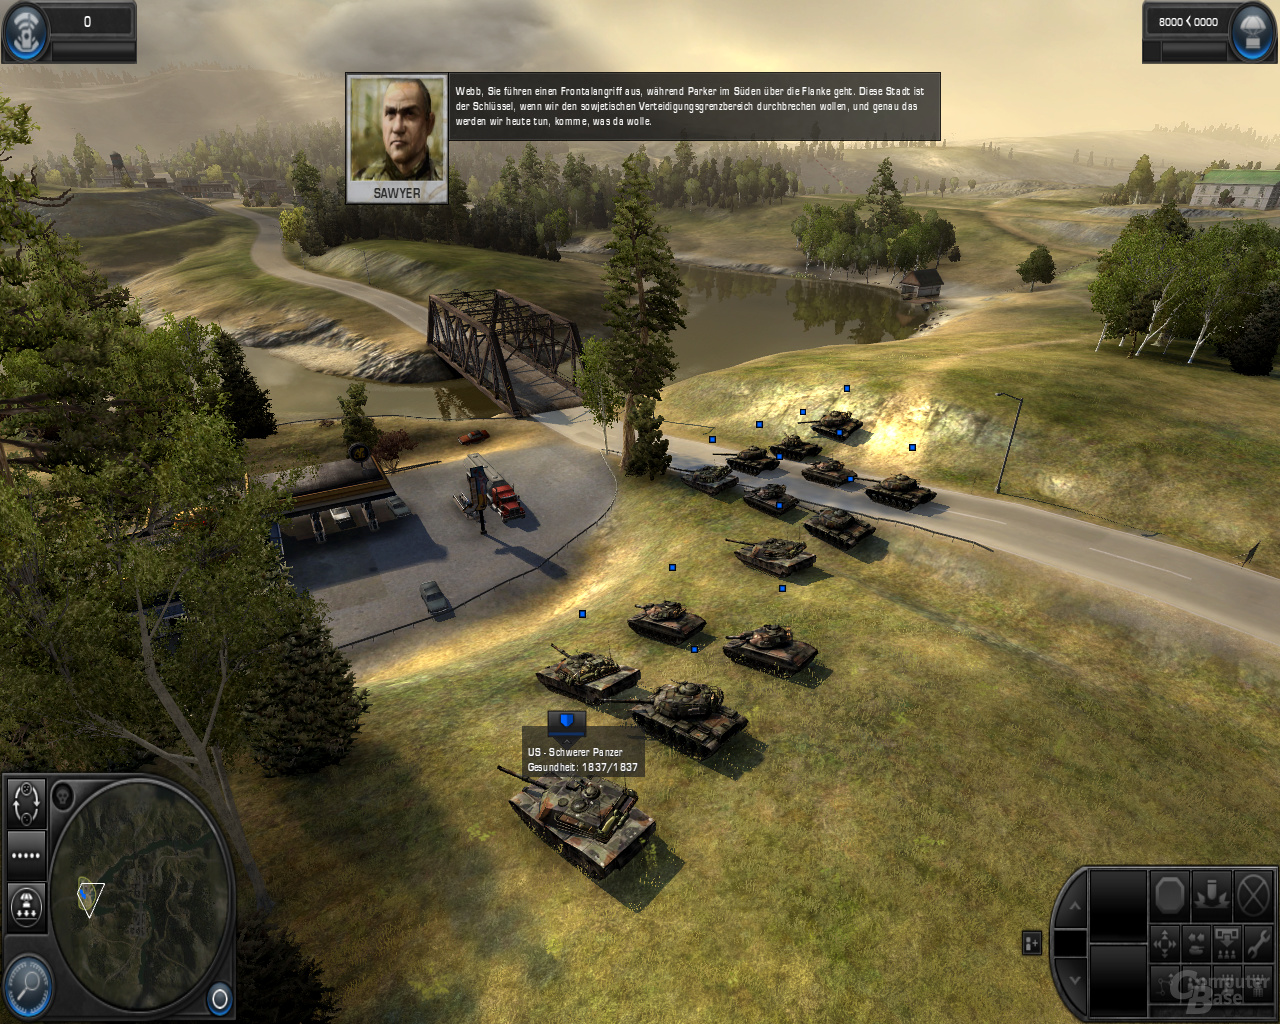 World in Conflict mit Ambient Occlusion